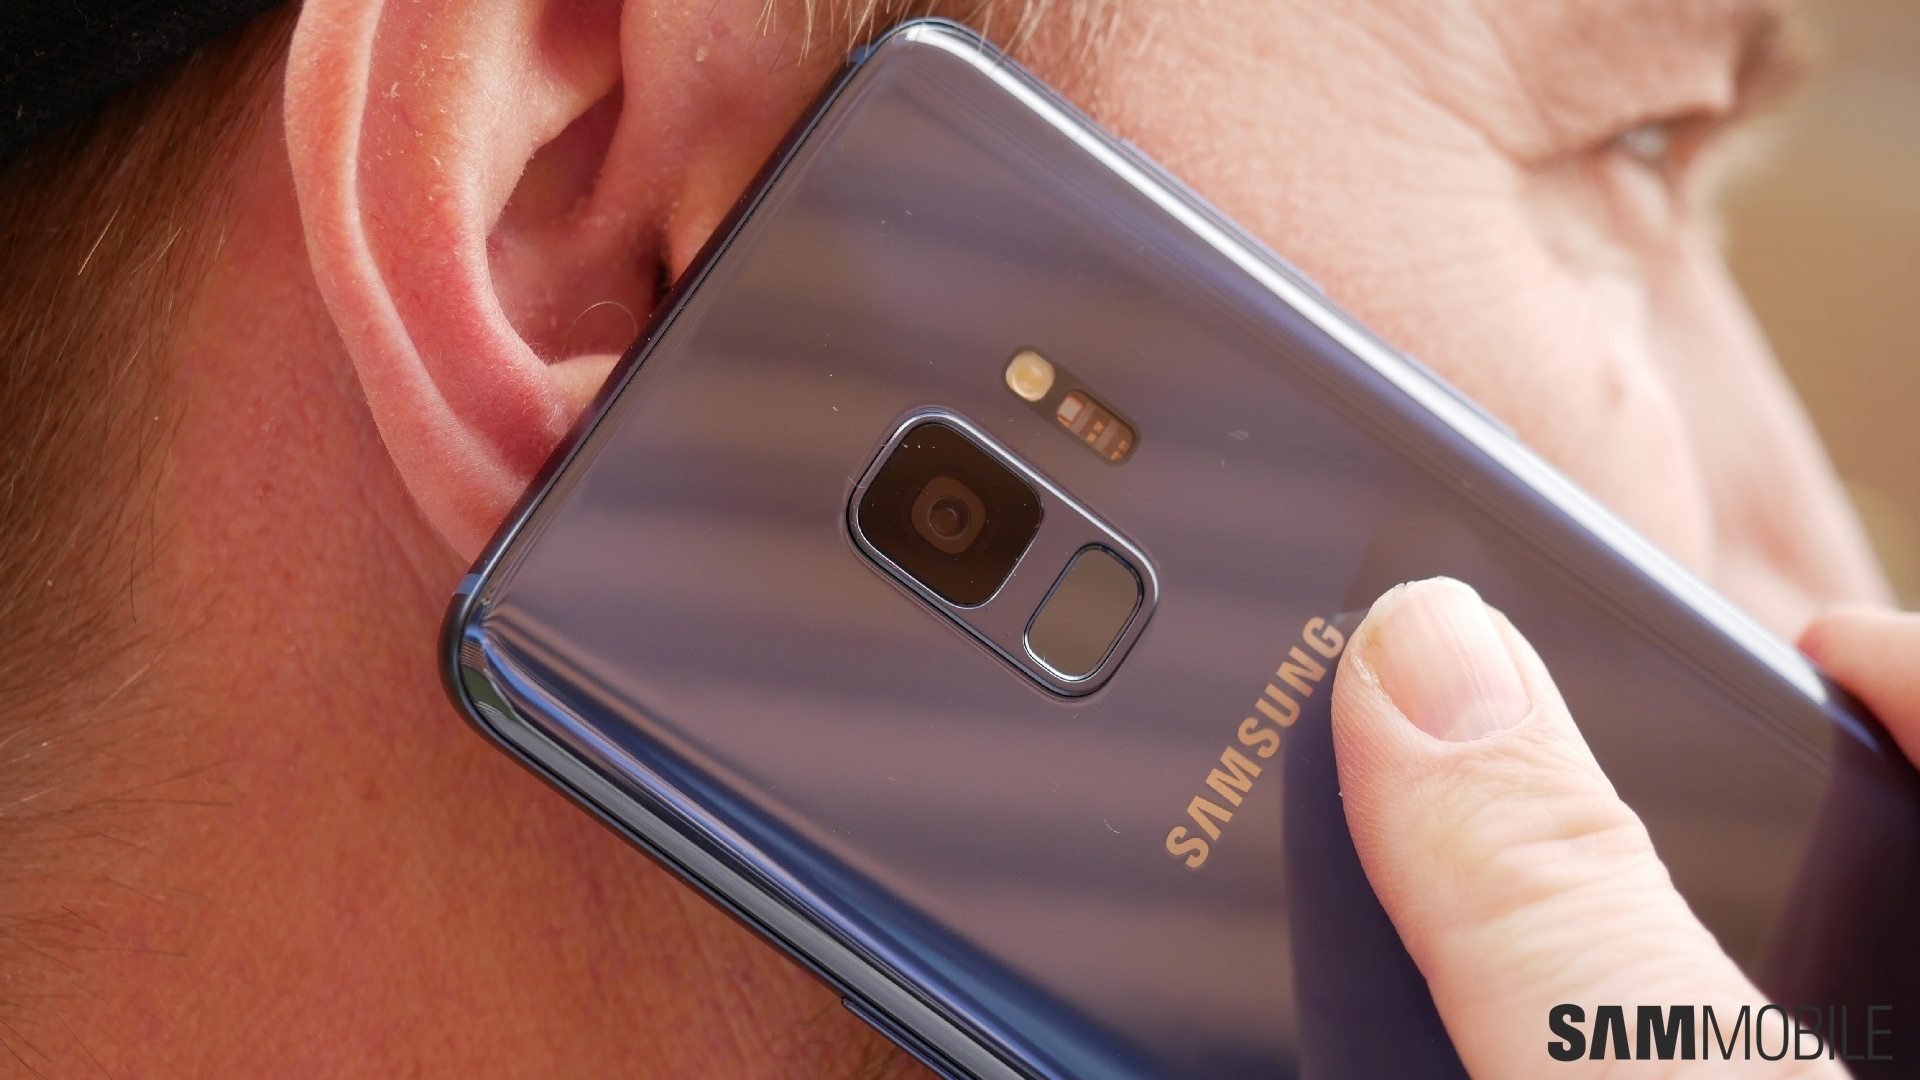 Galaxy S9/S9+ get call recording feature in some countries - SamMobile